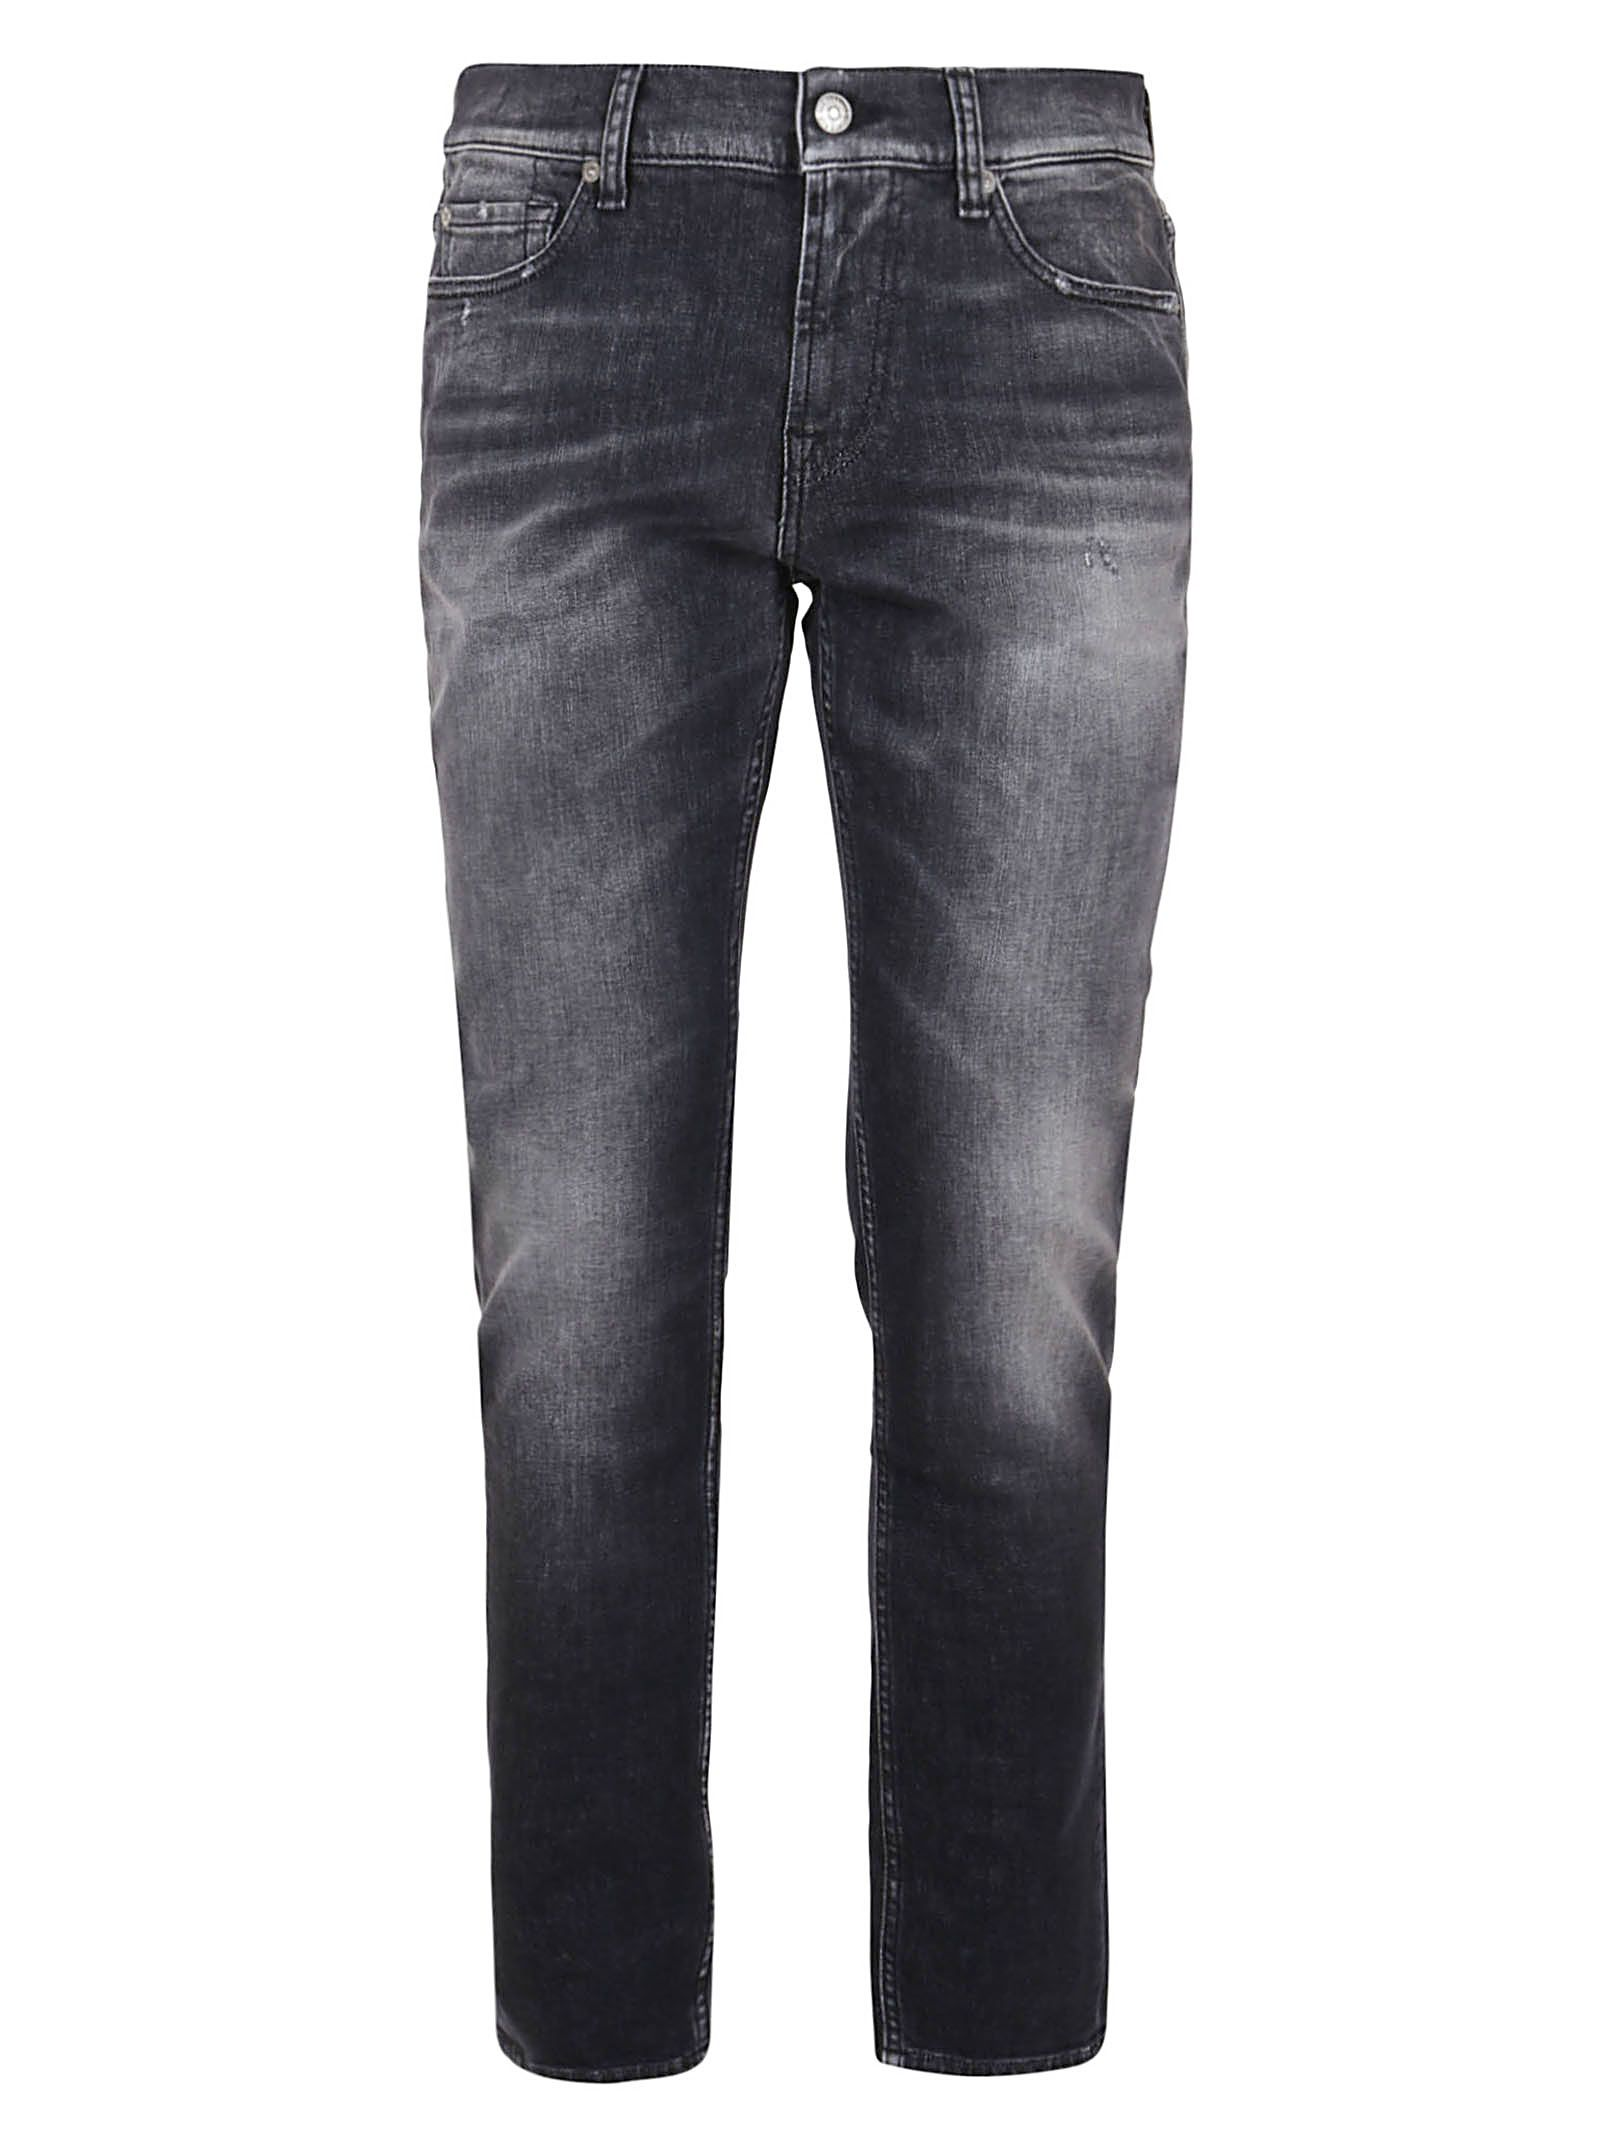 7 For All Mankind 7 FOR ALL MANKIND MEN'S JSD4A210MBMAJOR GREY COTTON JEANS